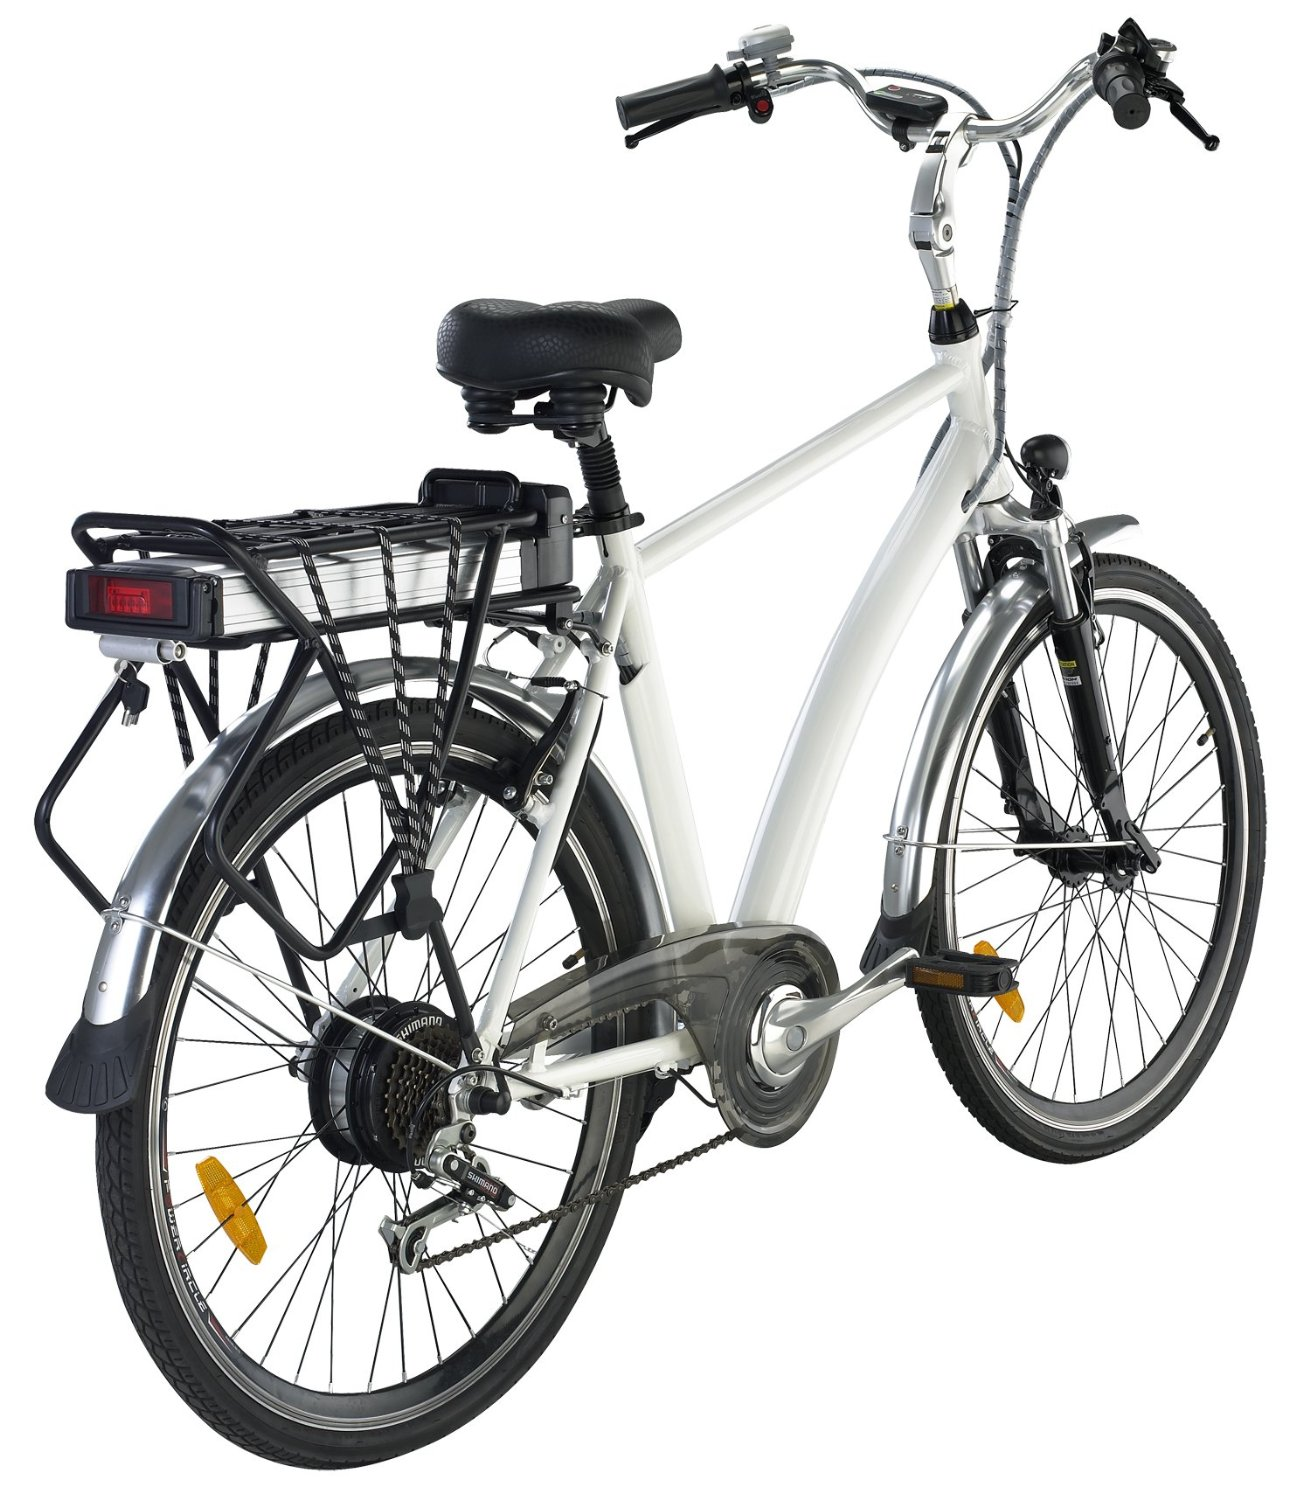 Yukon Trails Xplorer Sport Hybrid E-bike